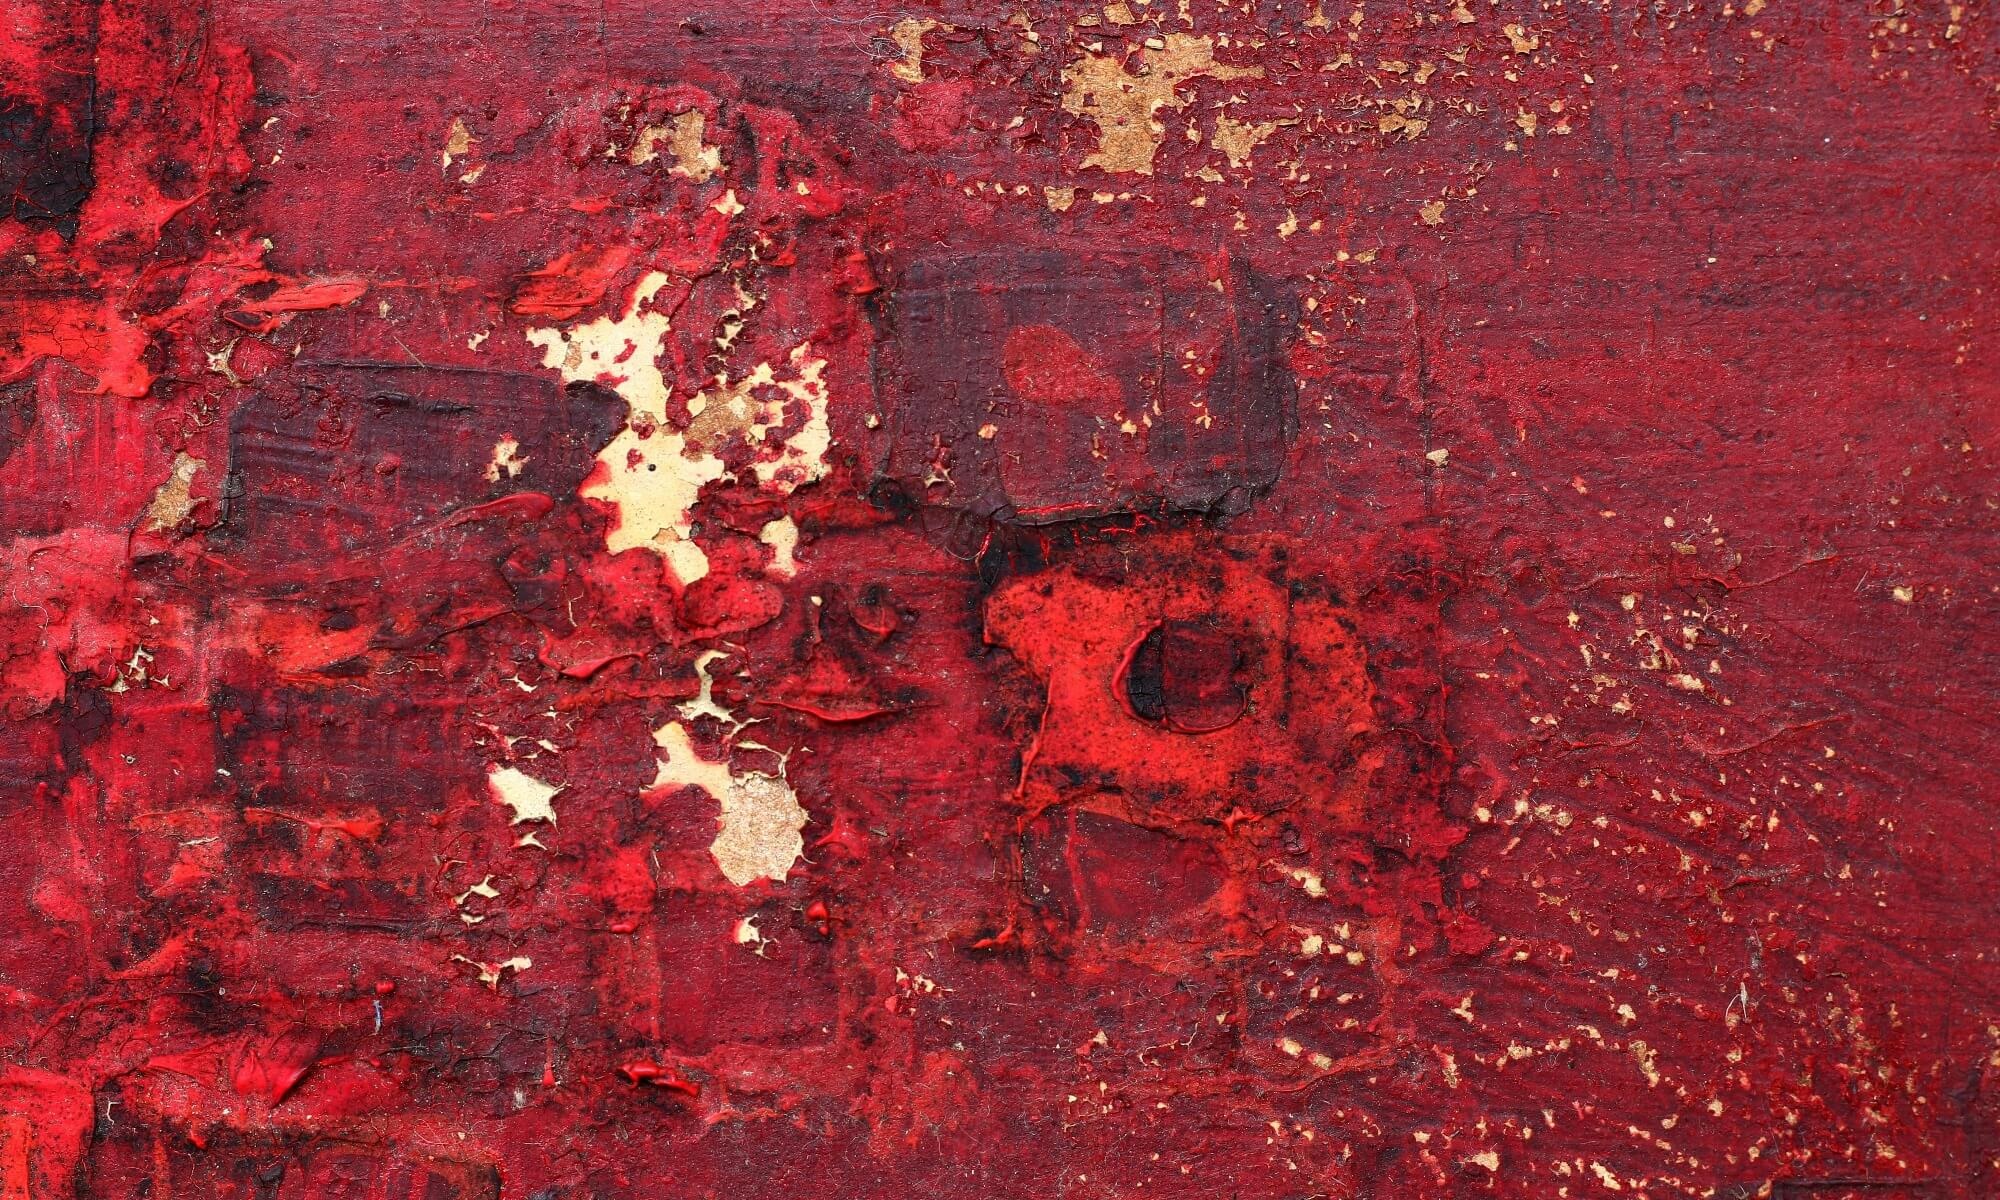 A Rothko Mural as Red Eclipse